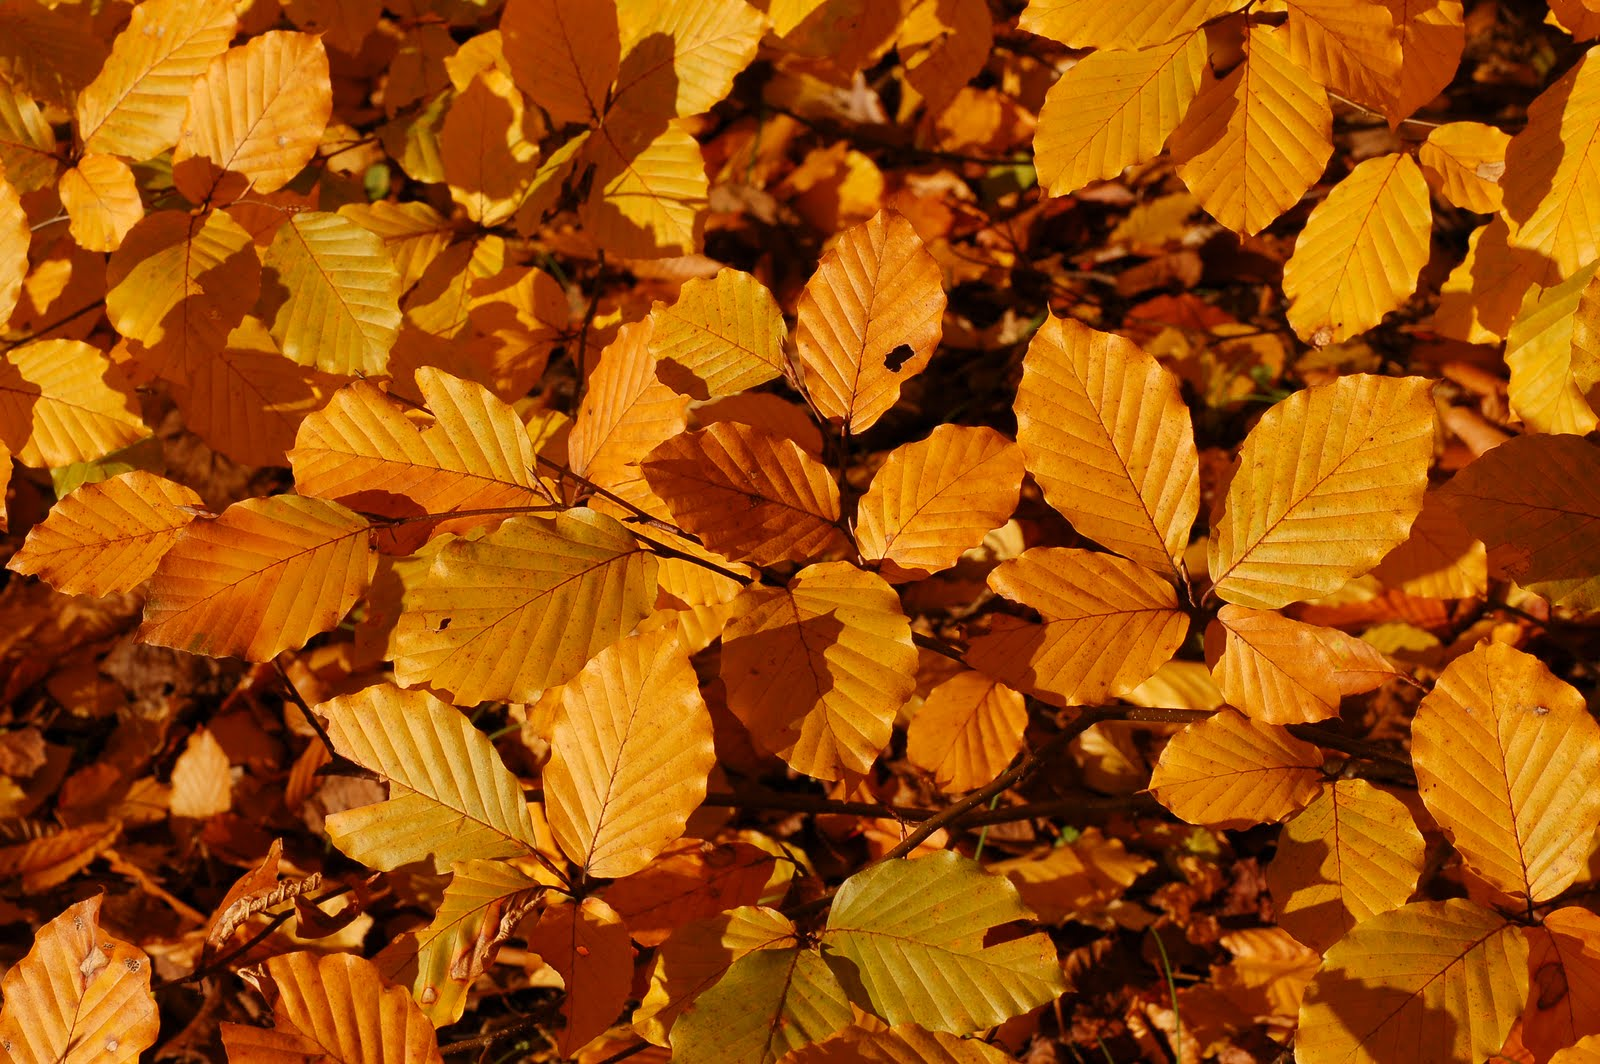 http://4.bp.blogspot.com/_ZueG3OvW8_k/TIwAUEP9zlI/AAAAAAAADX4/cK8aVERq3UM/s1600/Copper_Beech_Fagus_sylvatica_f__purpurea_Autumn_Leaves_Closeup_3008px.jpg